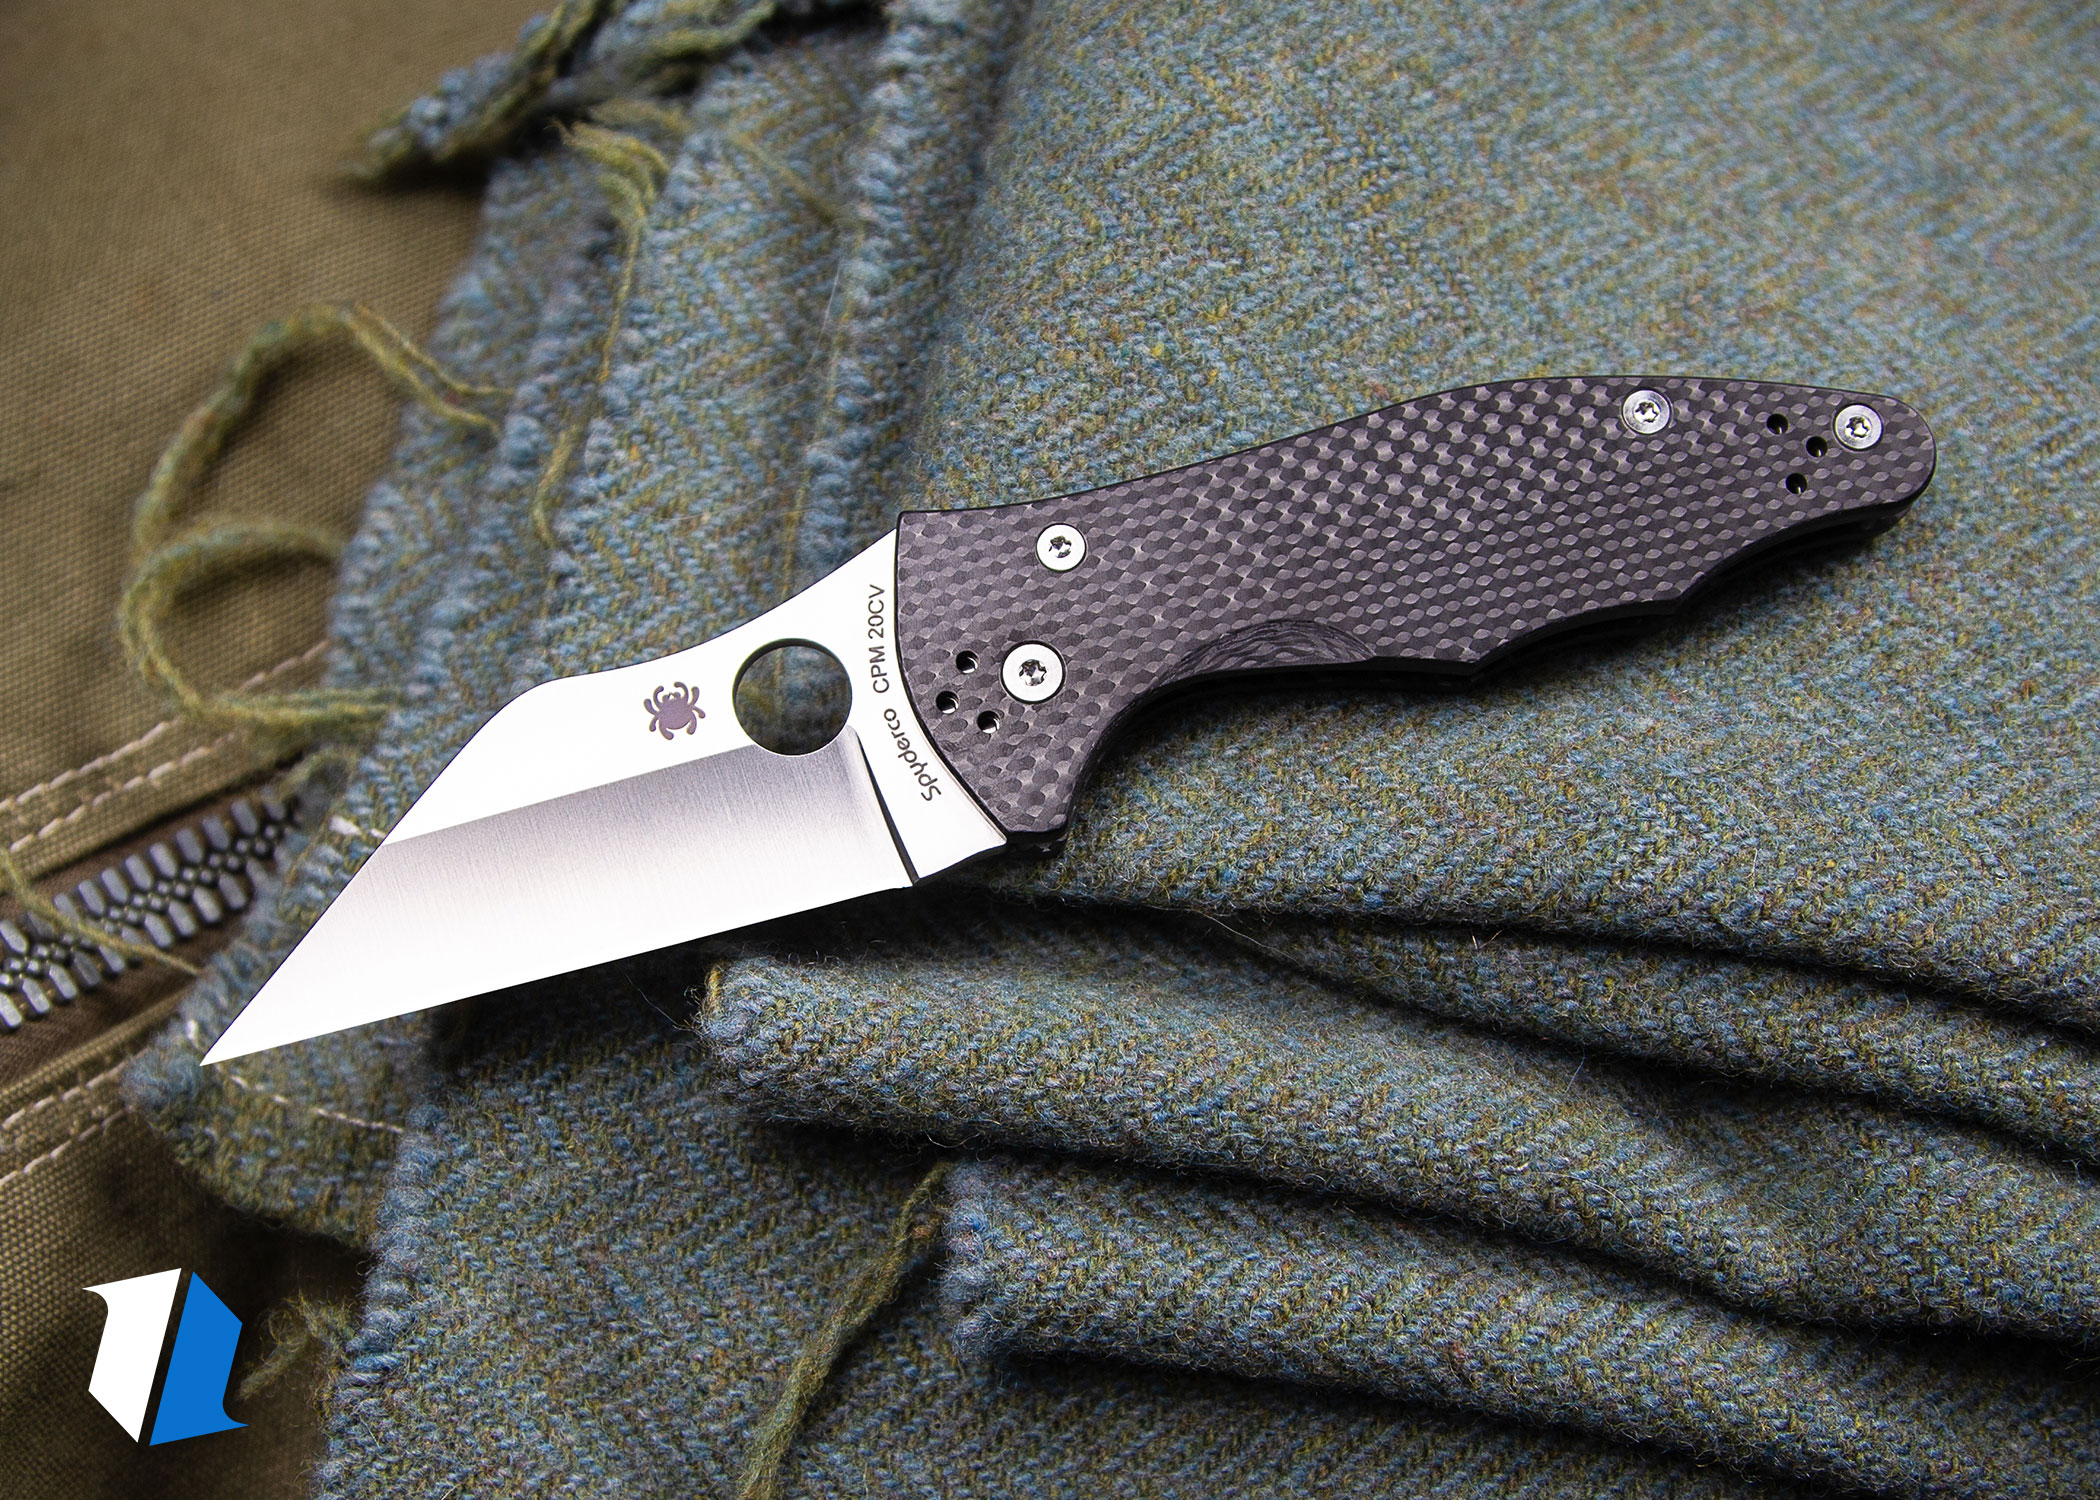 Tactical blade shape and edge